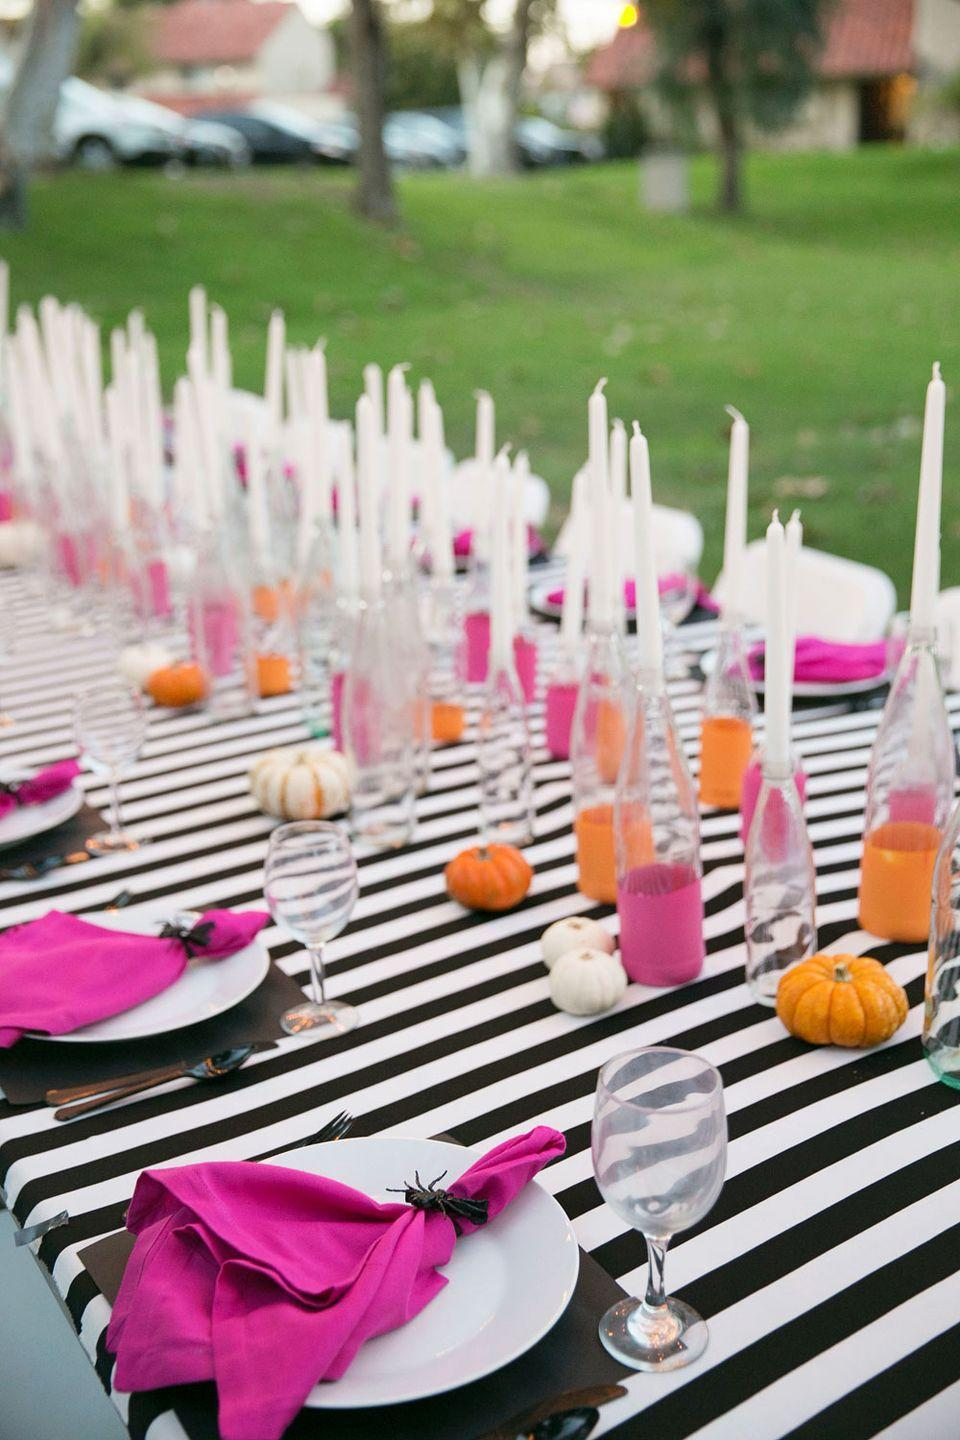 "<p>Have an outdoor Halloween dinner party? A <a href=""https://www.amazon.com/LinenTablecloth-70-Inch-Polyester-Tablecloth-Checker/dp/B008TLCX66?&tag=housebeautiful_auto-append-20&ascsubtag=[artid